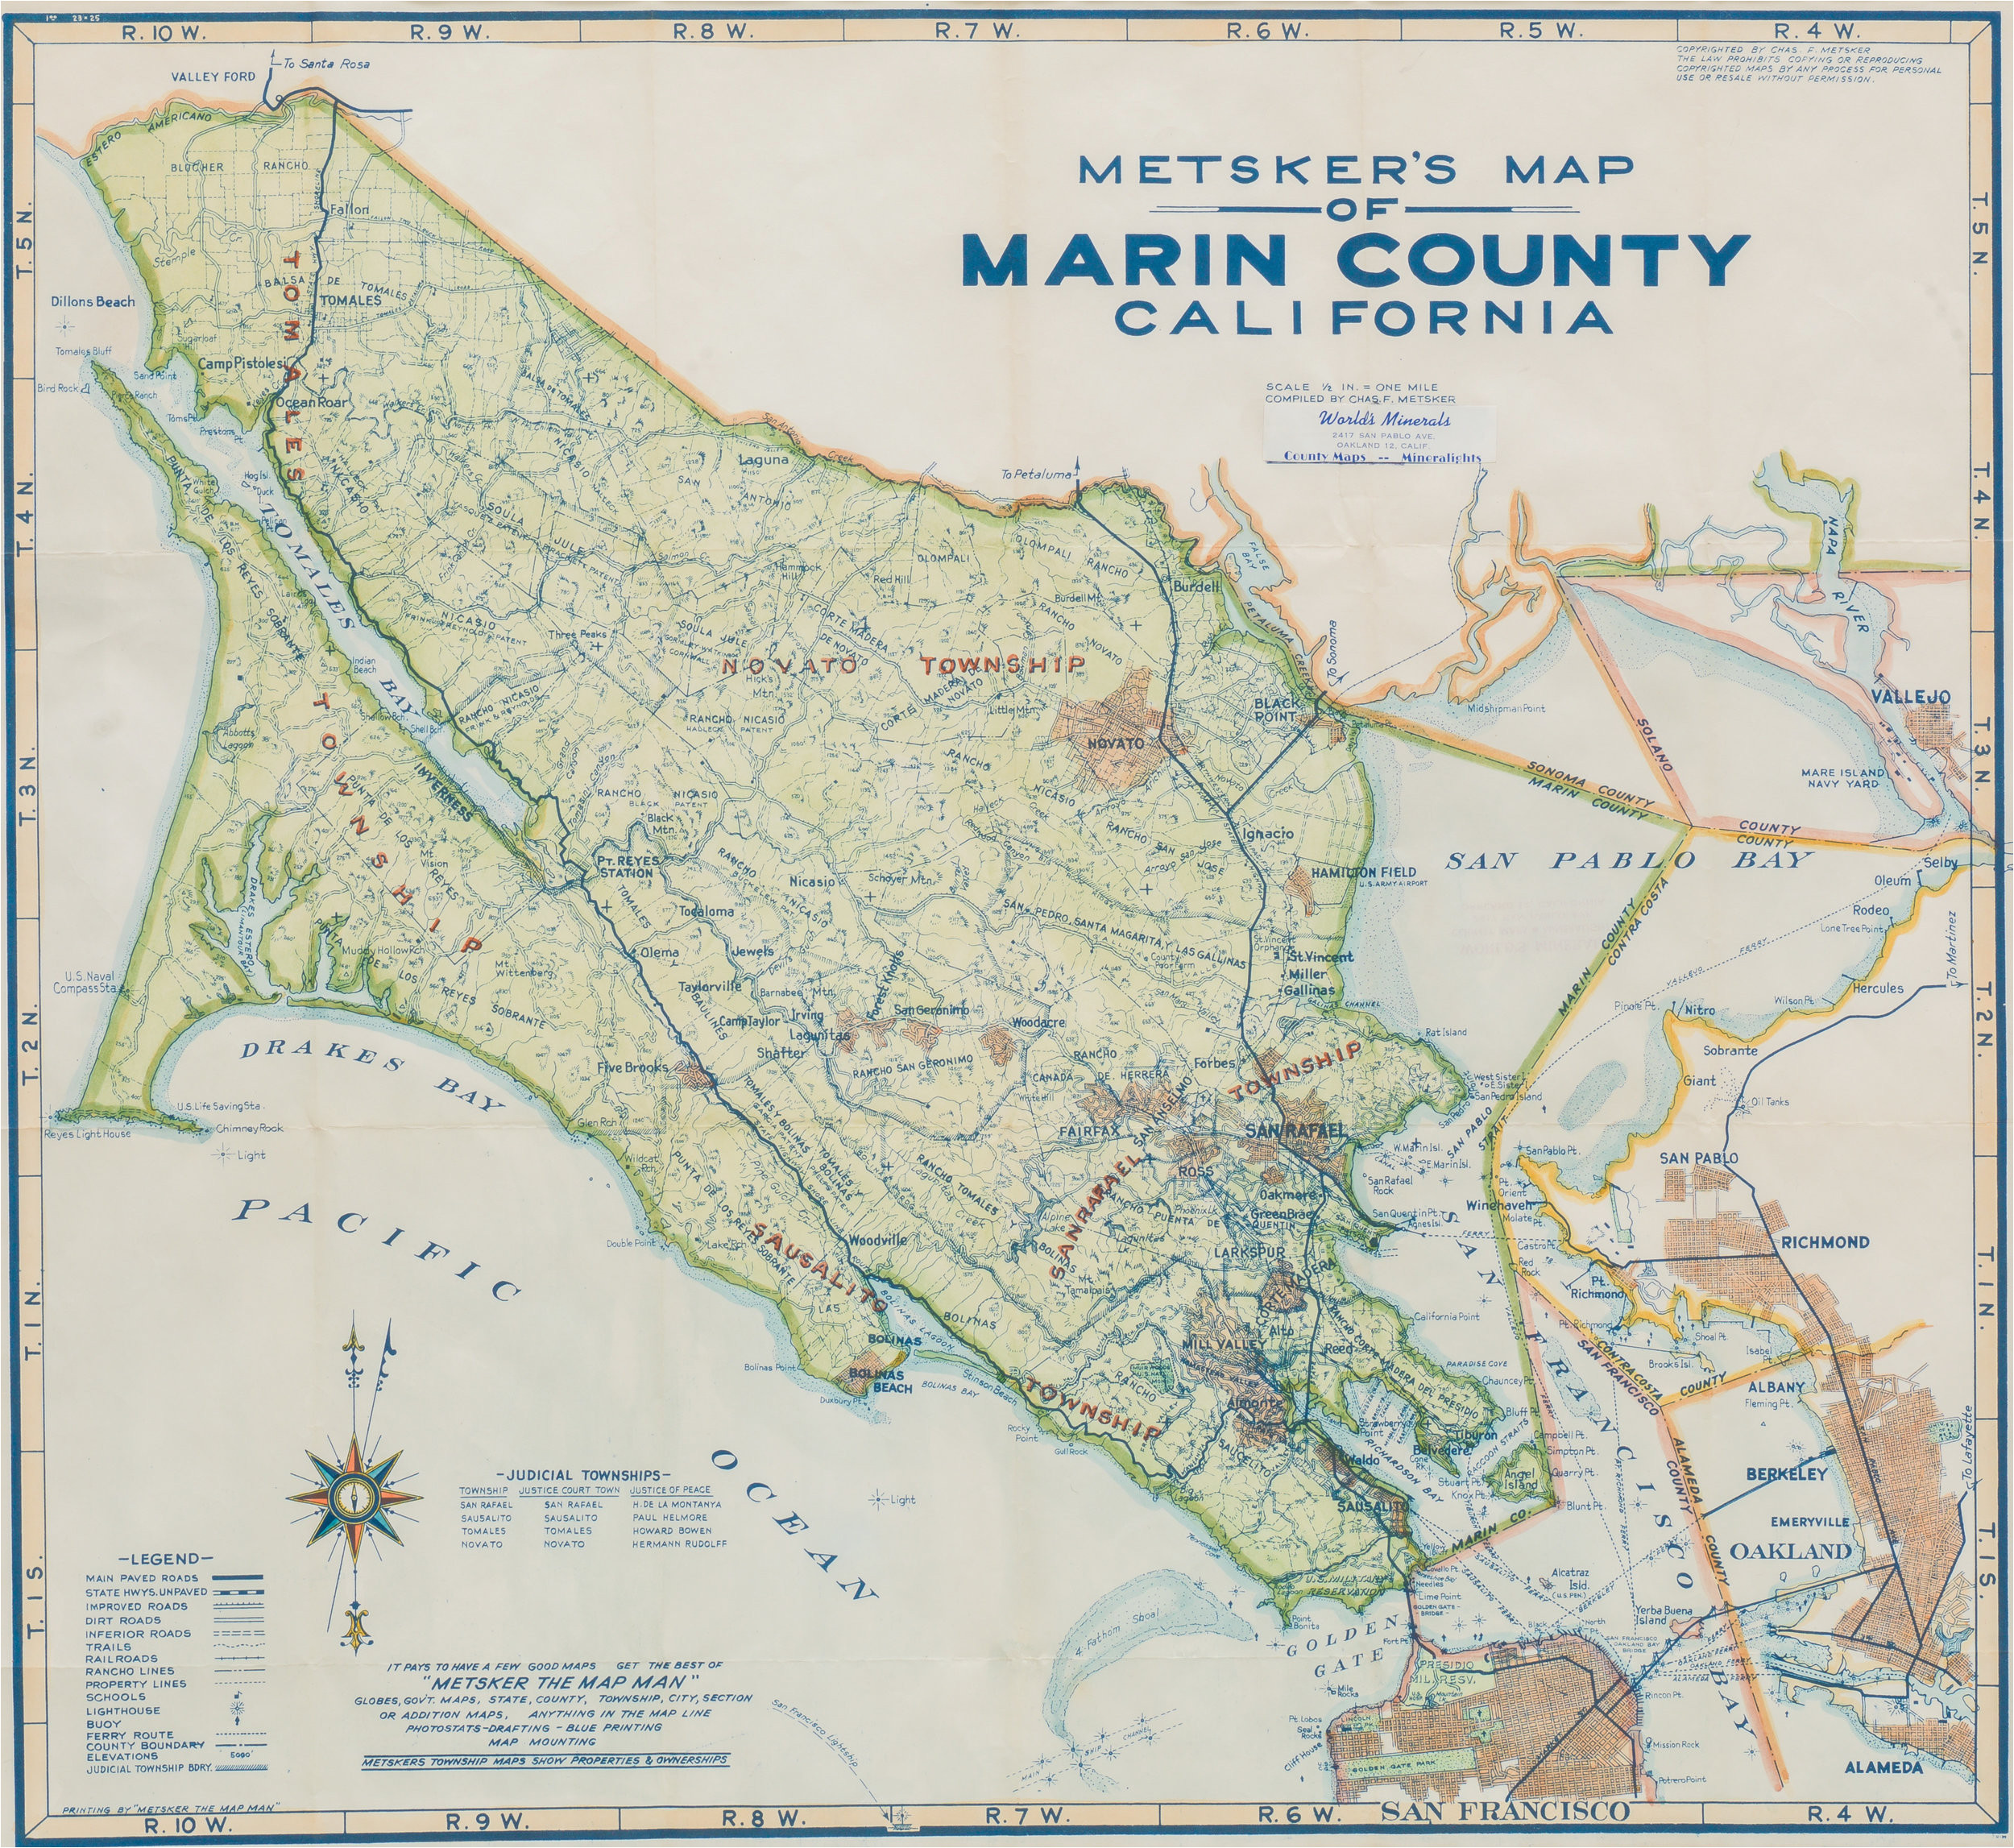 California Off Road Maps 1948 Metsker Map Of Marin County California on